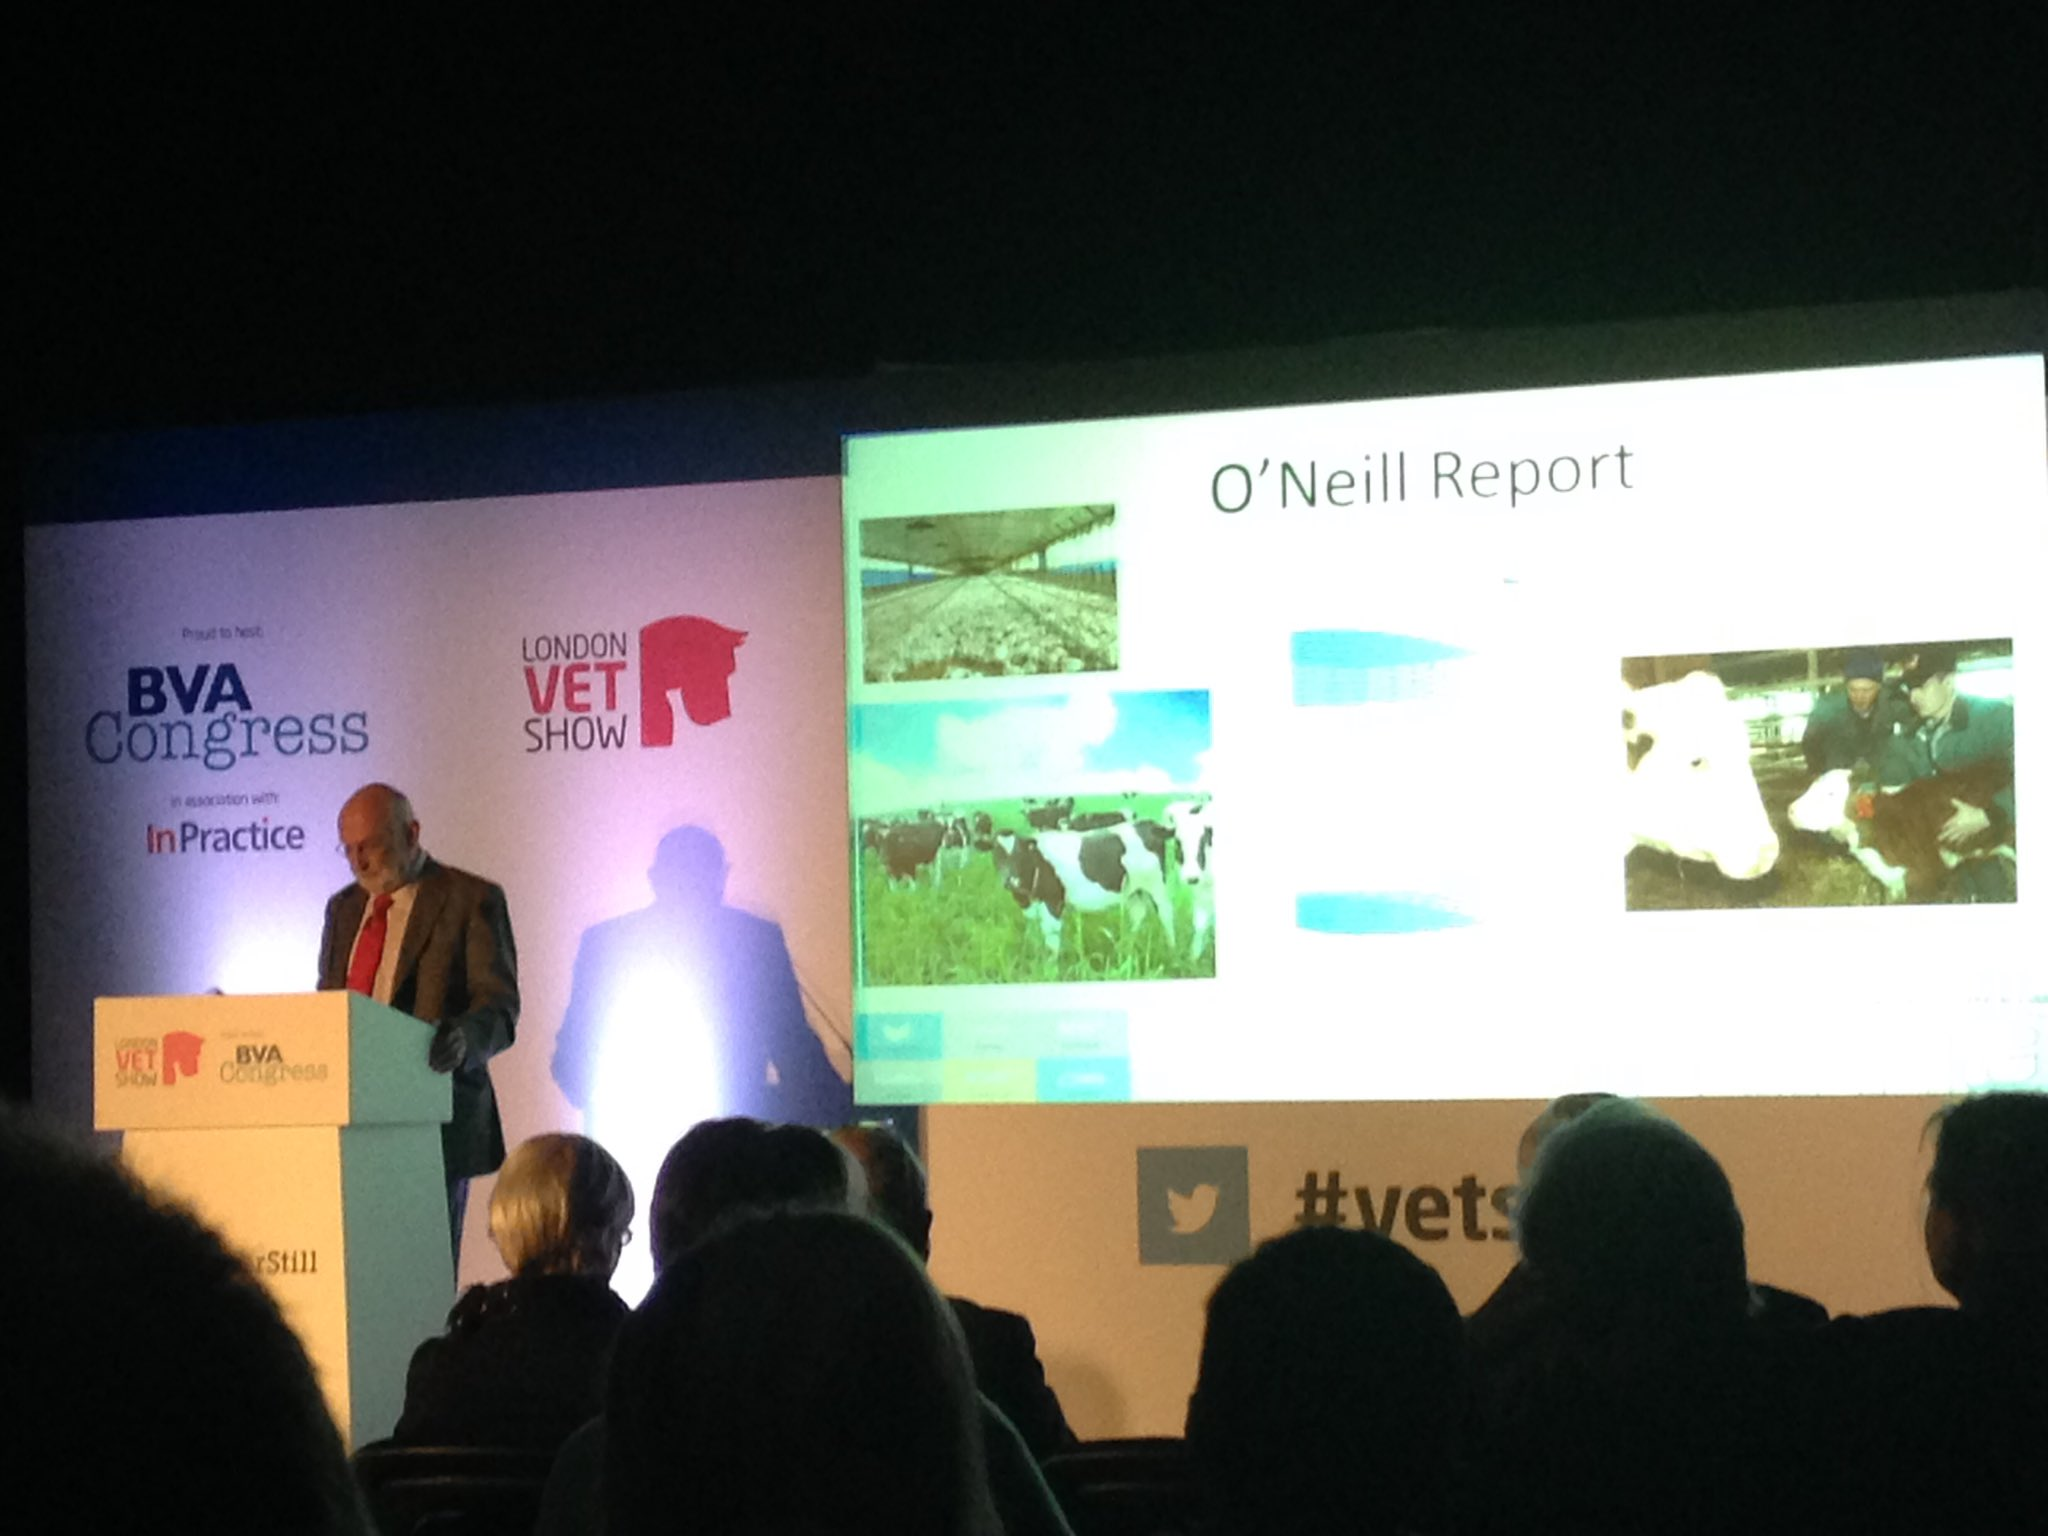 Next up John Fitzgerald from @RUMA_UK discussing the O'Neill report outcomes & future of tackling AMR #vetshow #AMR https://t.co/Z5FBwTztkJ